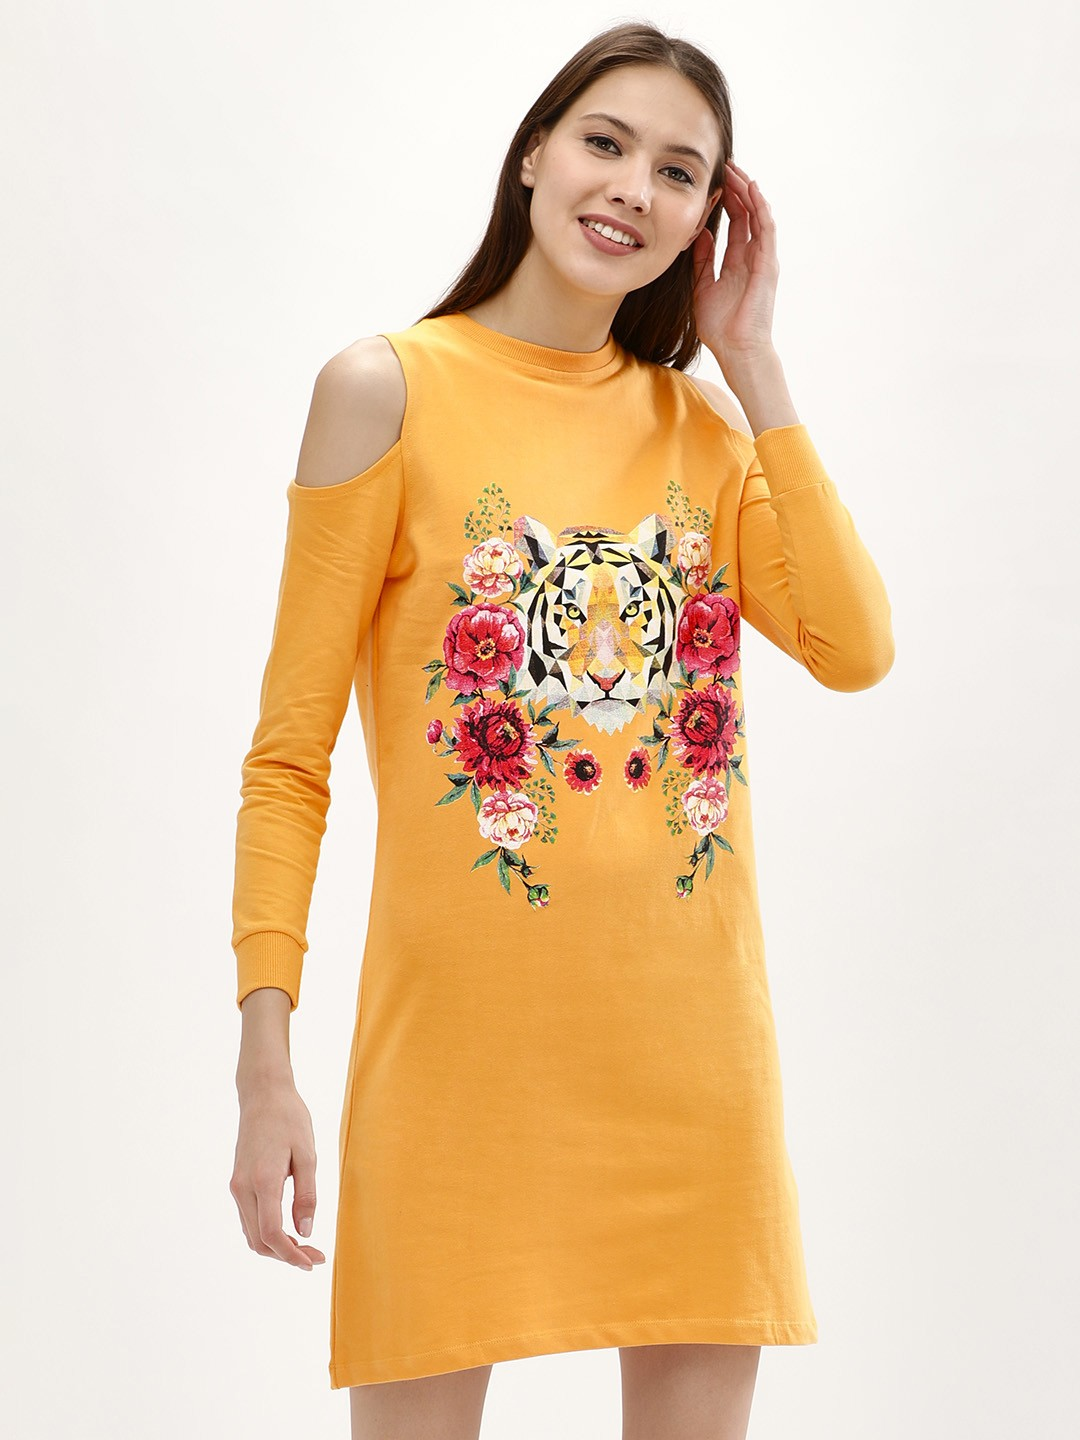 Evah London Yellow Tiger Print Sweat Dress 1